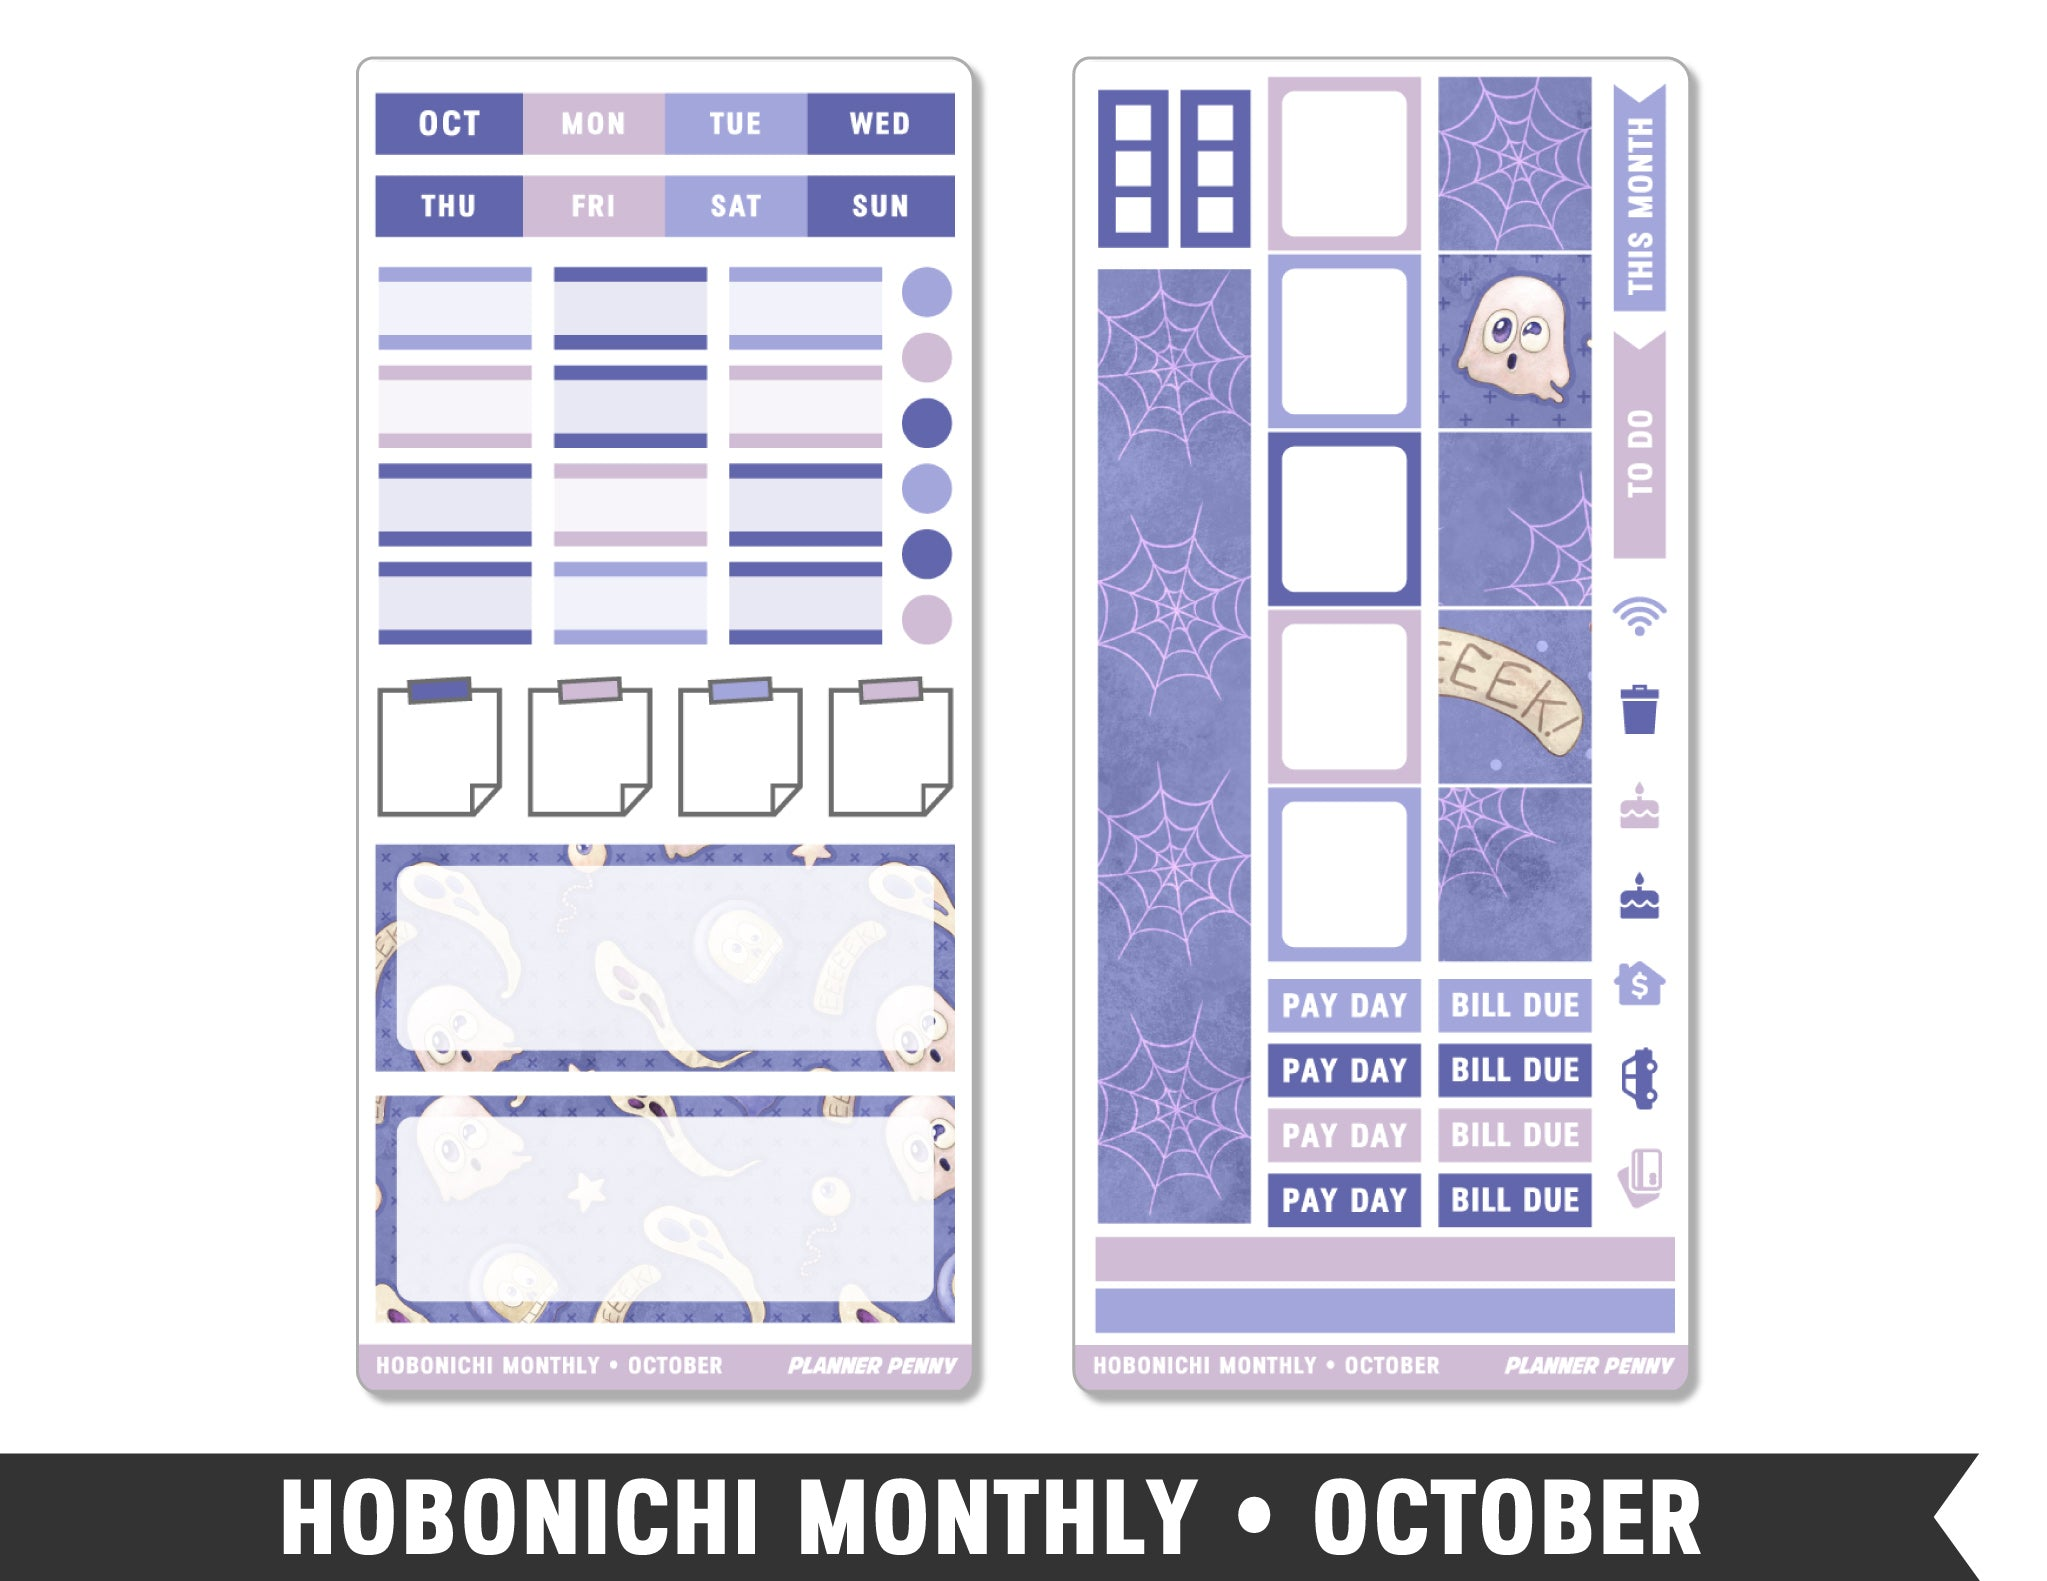 Hobonichi Monthly • October • Monthly Spread Planner Stickers - Planner Penny